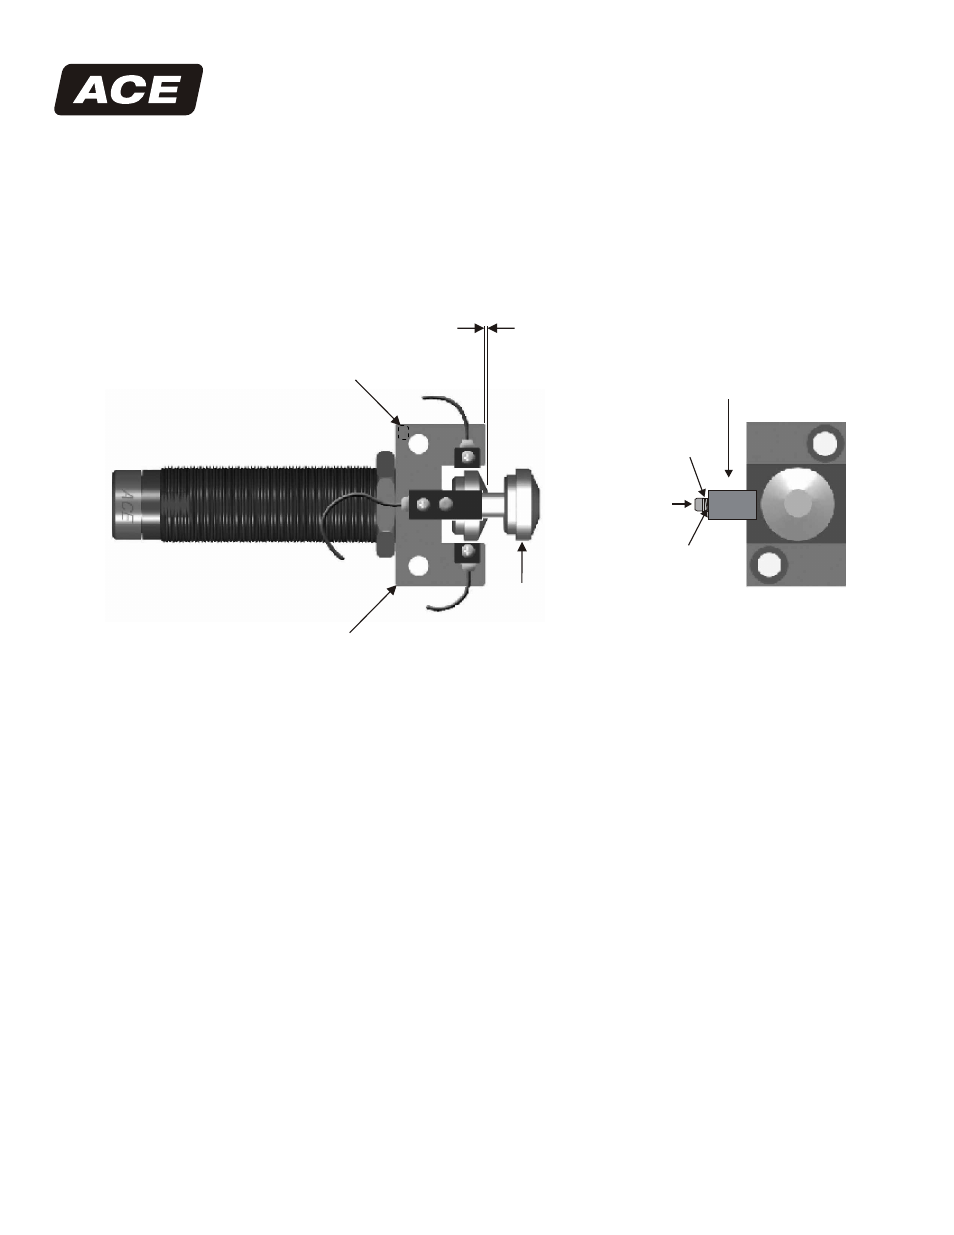 Ace Controls Mvc 900 User Manual 2 Pages Also For 600 5 Wire Proximity Sensor Wiring Diagram 225 Mc 150 Sc 925 650 300 190 Ma